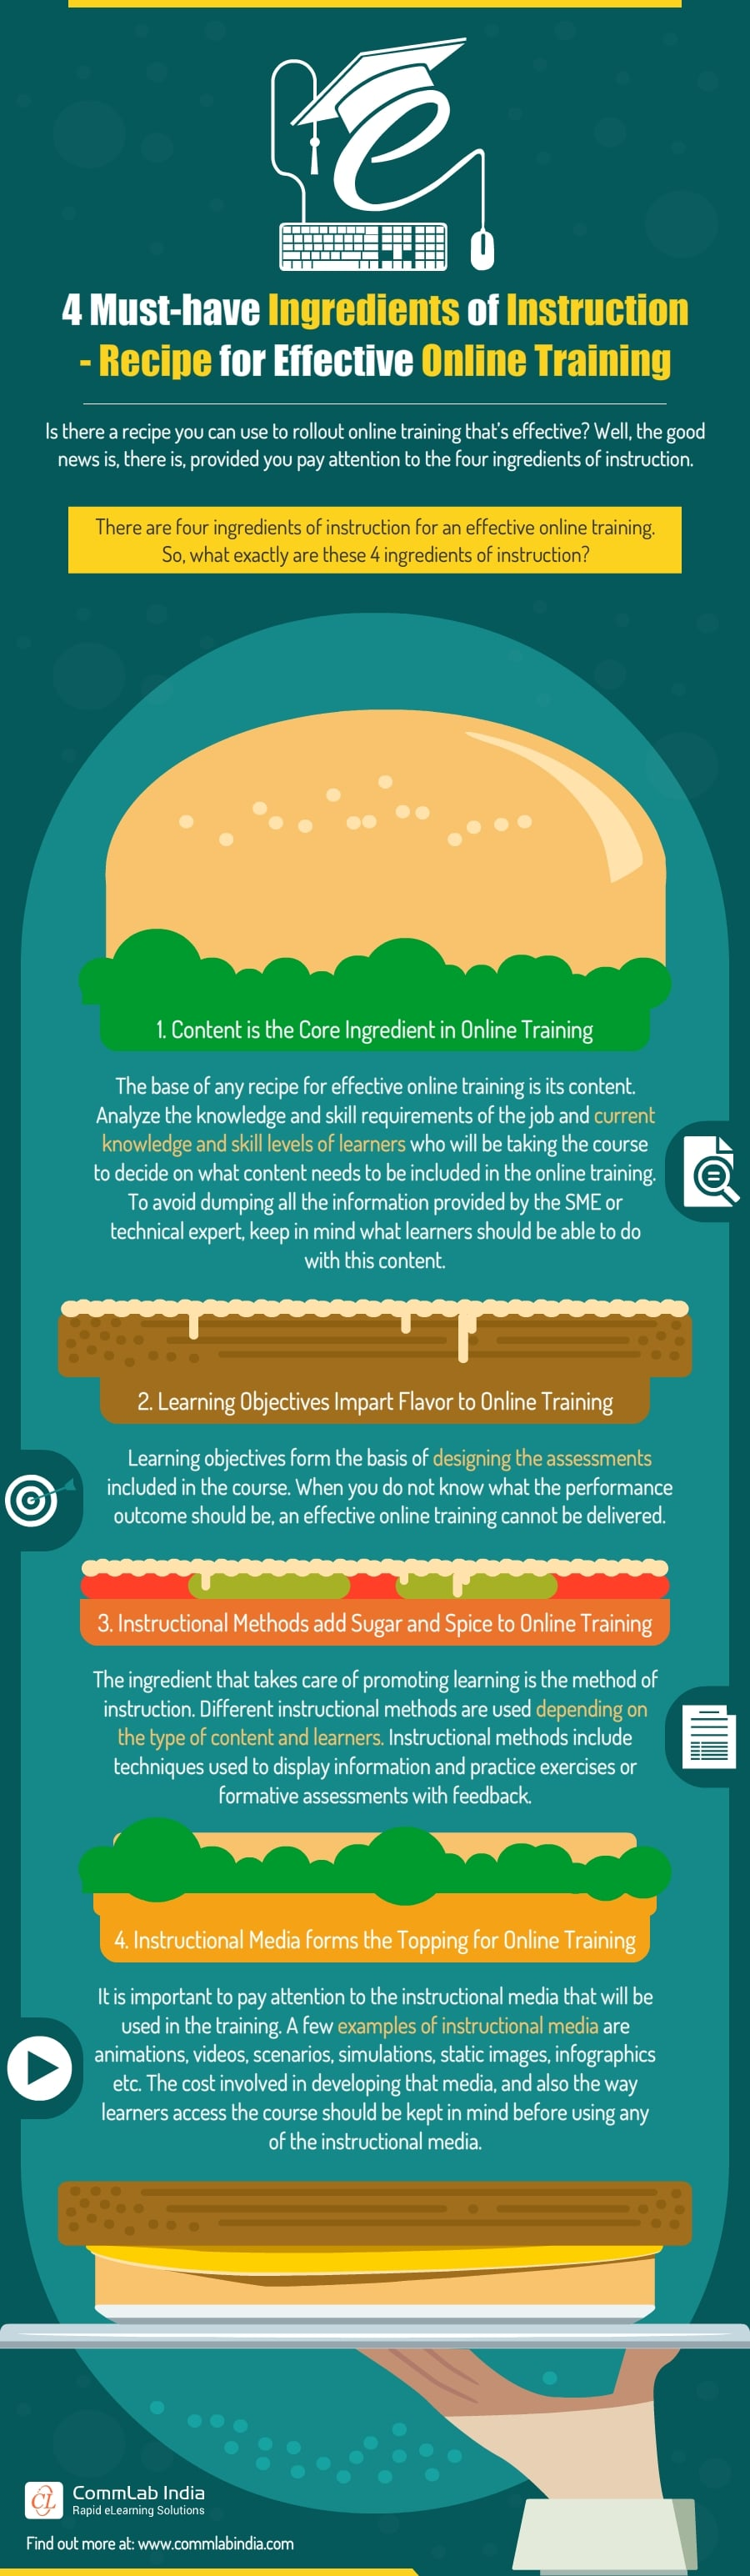 4 Ingredients of Instruction - Recipe for Effective Online Training [Infographic]